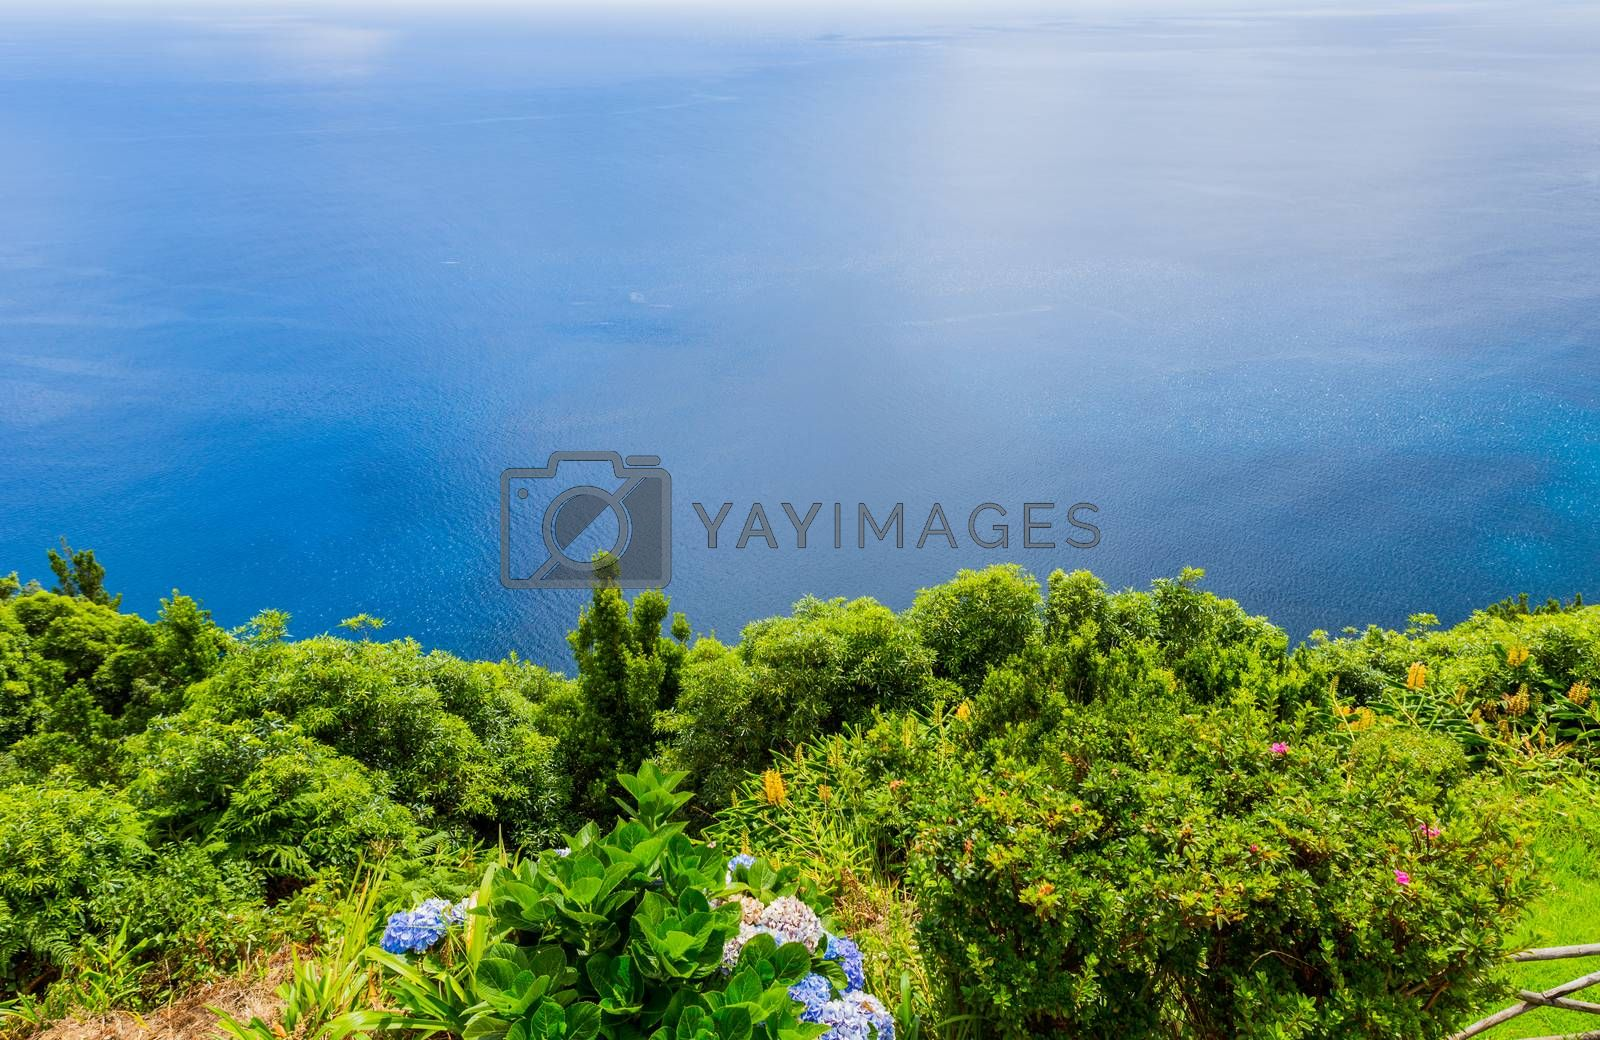 Royalty free image of Viewpoint of Ponta do Sossego by zittto